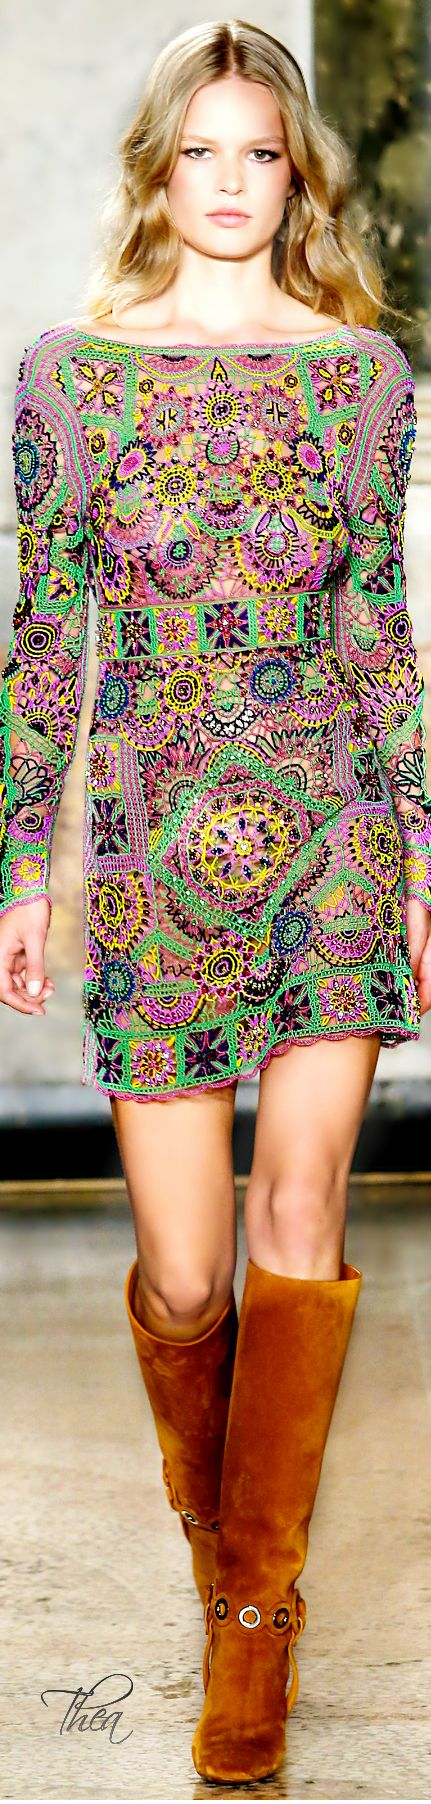 Designers Inspired by the 2960s: Emilio Pucci ~ SS 2015.